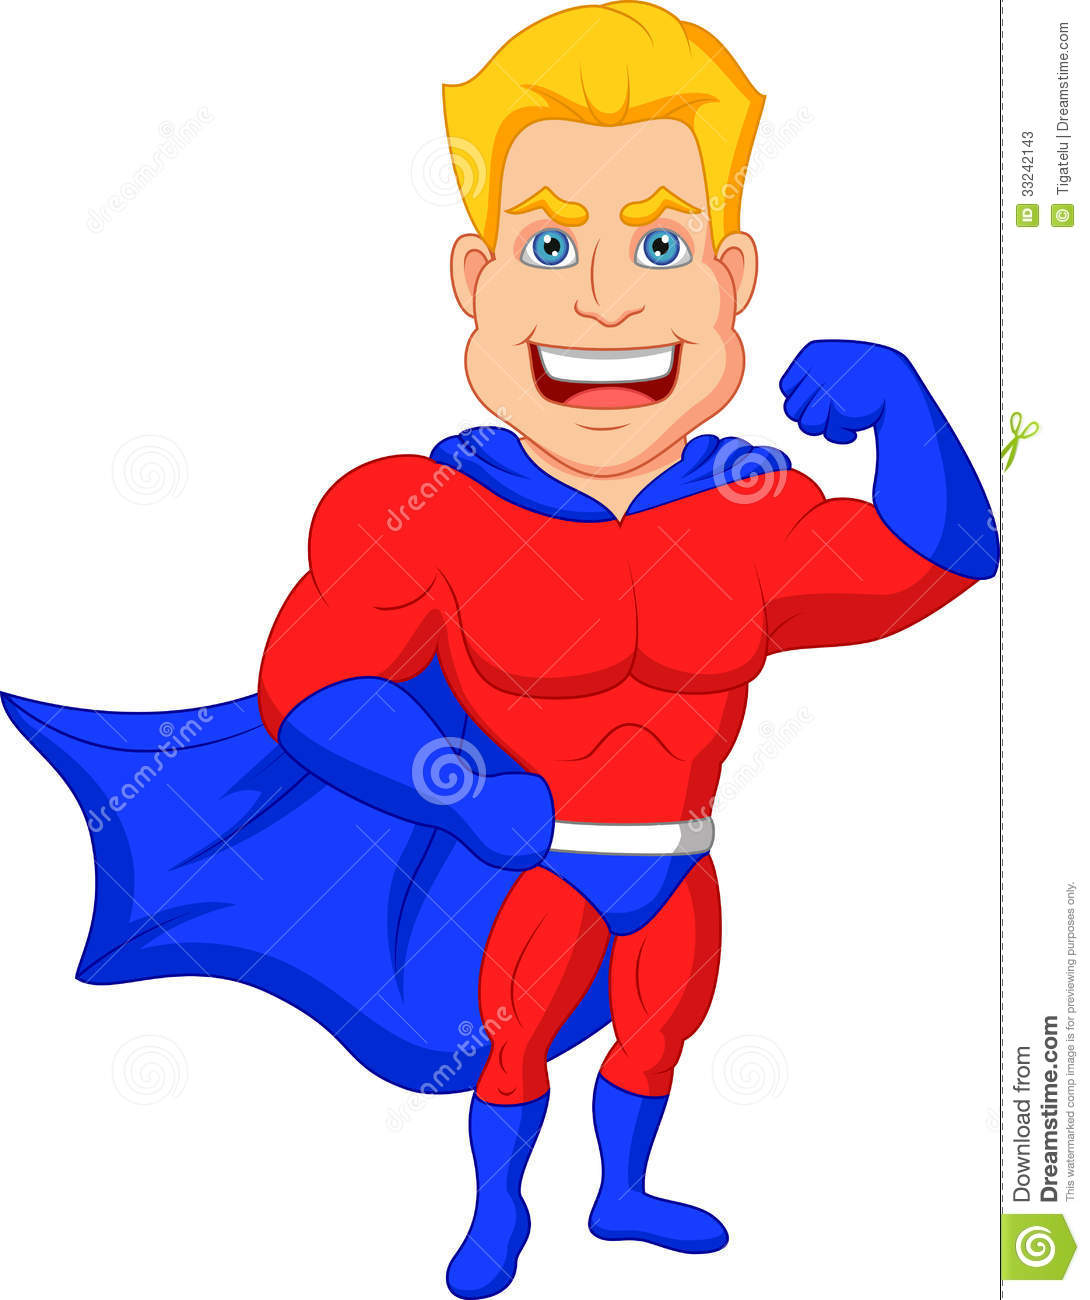 Superhero Cartoon Posing Stock Photos  Image: 33242143